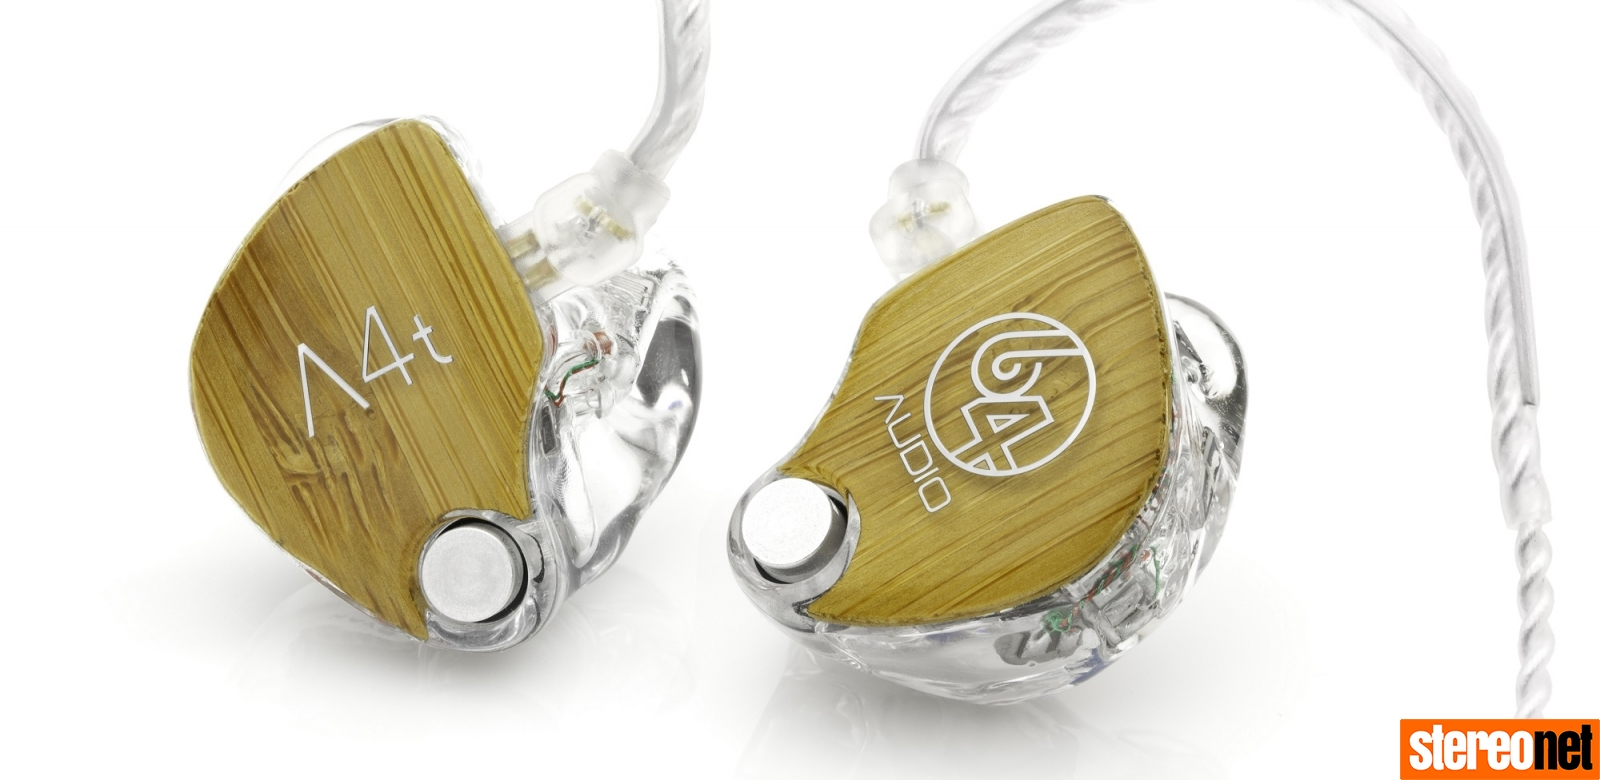 64 Audio UK